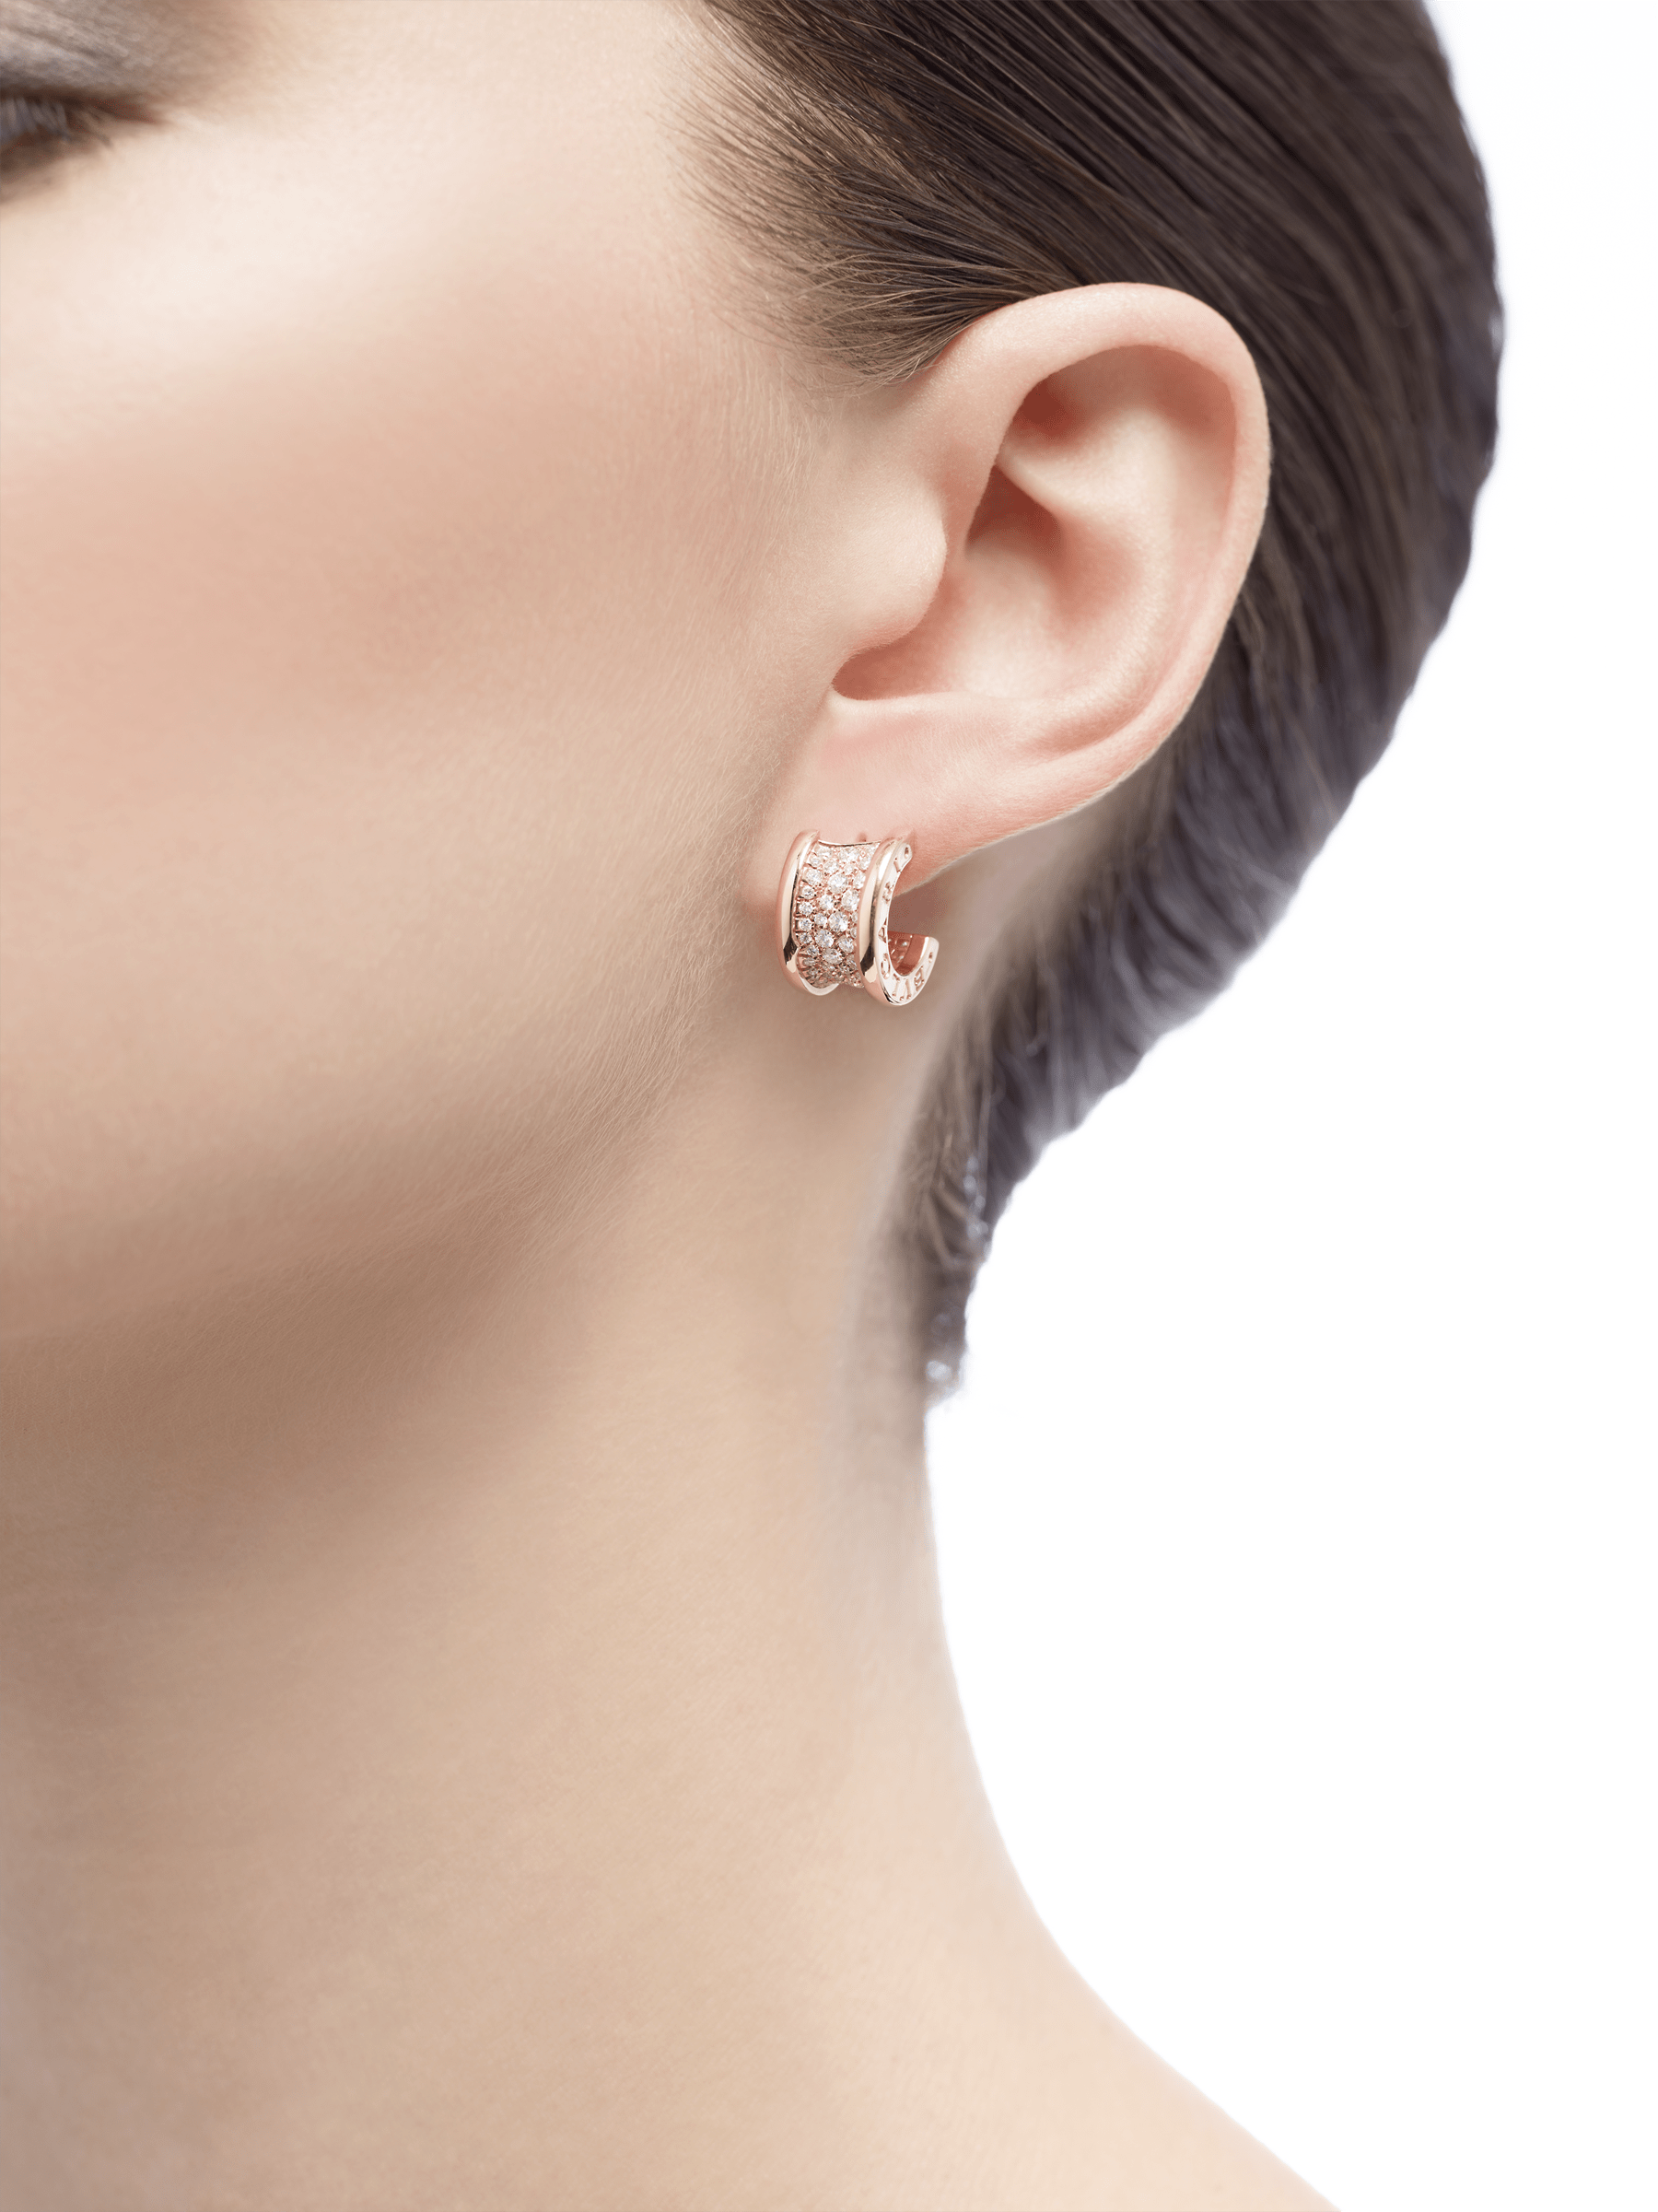 B.zero1 earrings in 18 kt rose gold set with pavé diamonds on the spiral. 347814 image 3